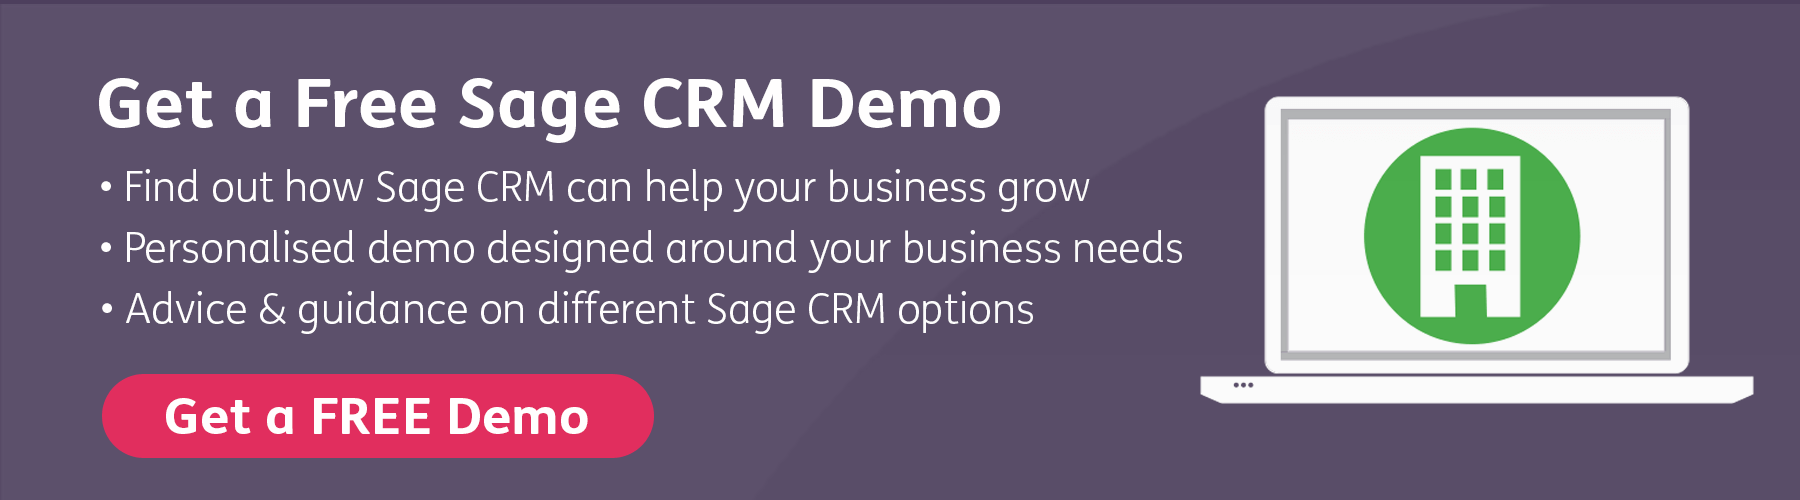 Get-a-free-Sage-CRM-demo-from-itas-award-winning-sage-business-partner